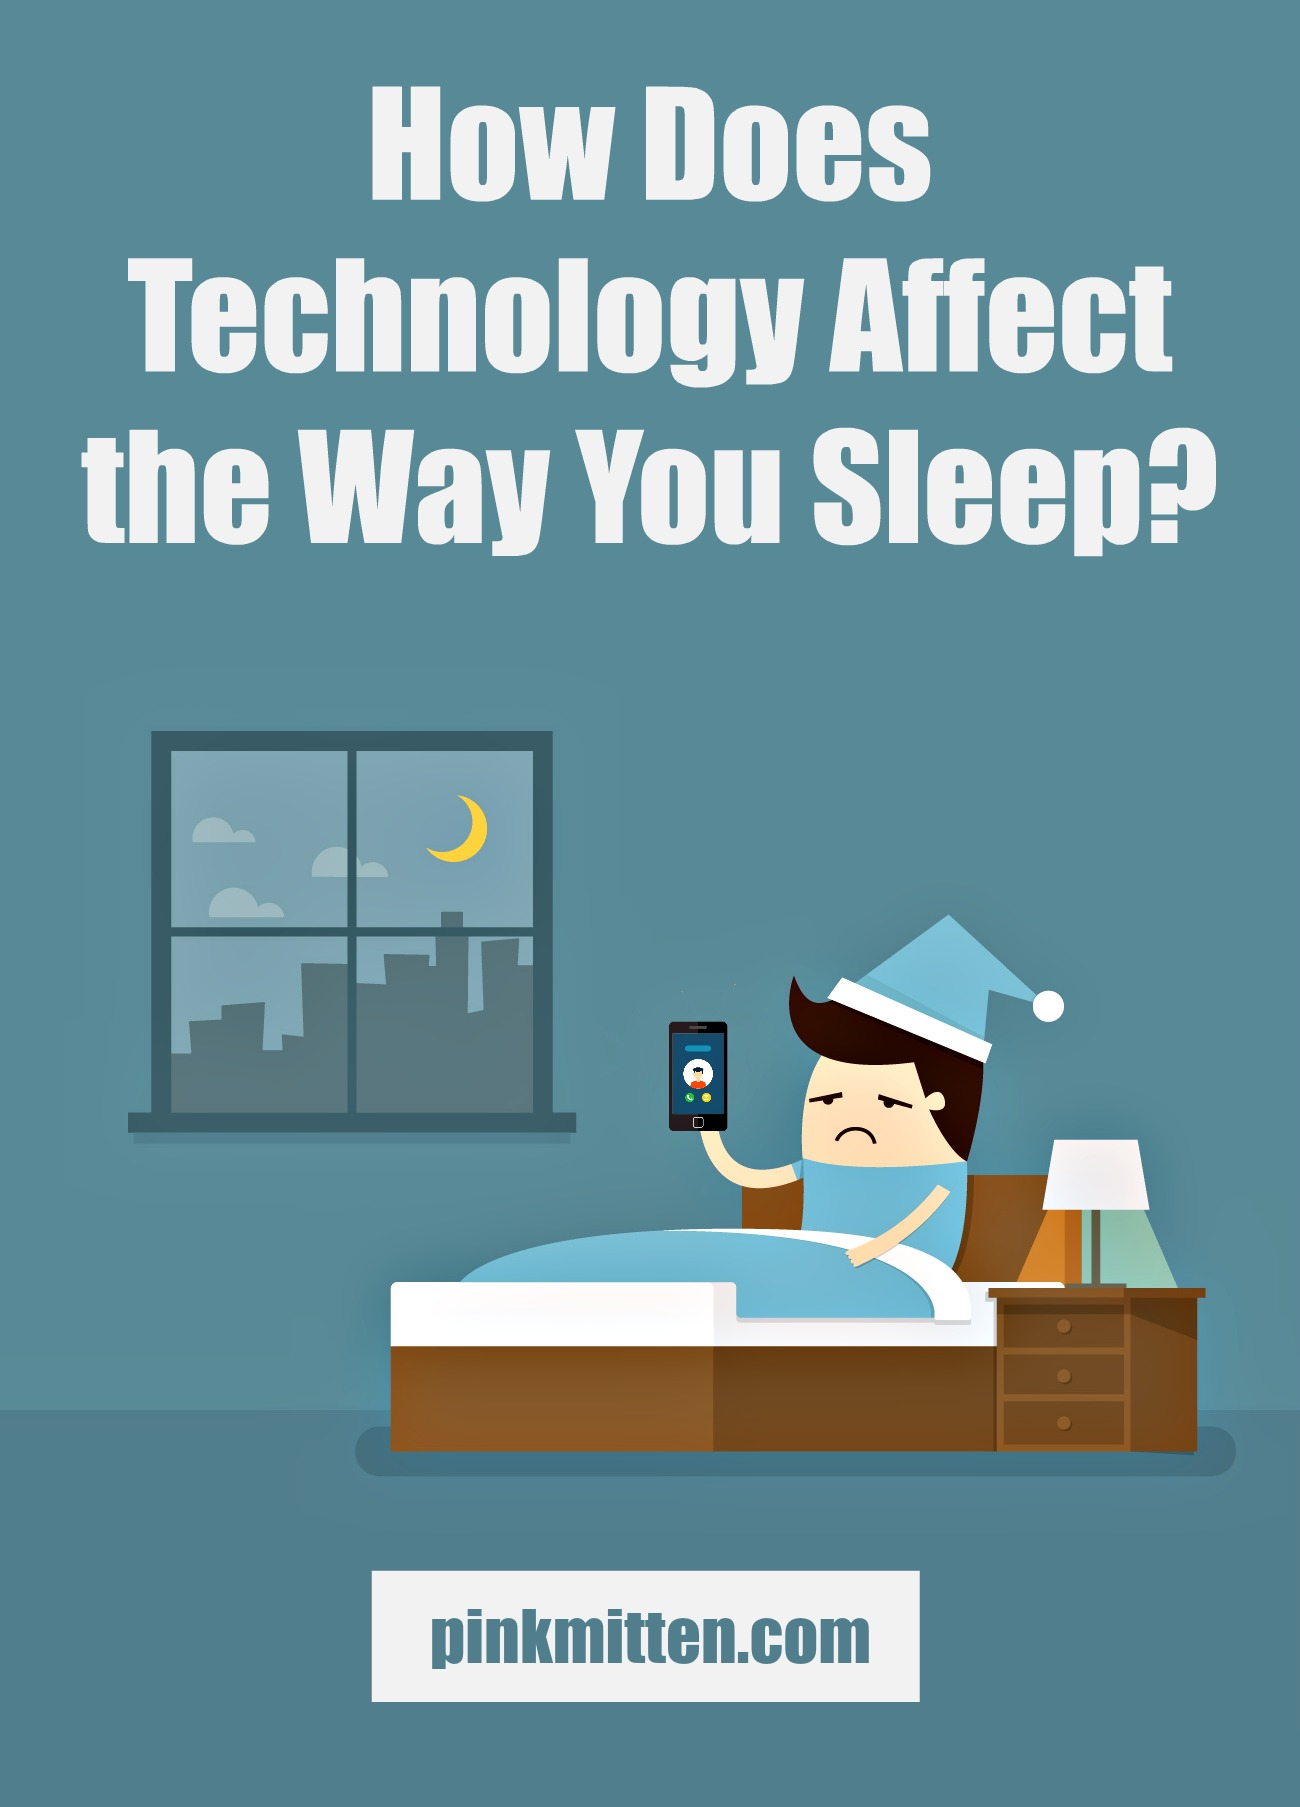 How does technology affect the way you sleep? See here and fix your bad habits! pinkmitten.com #sleep #technology #health